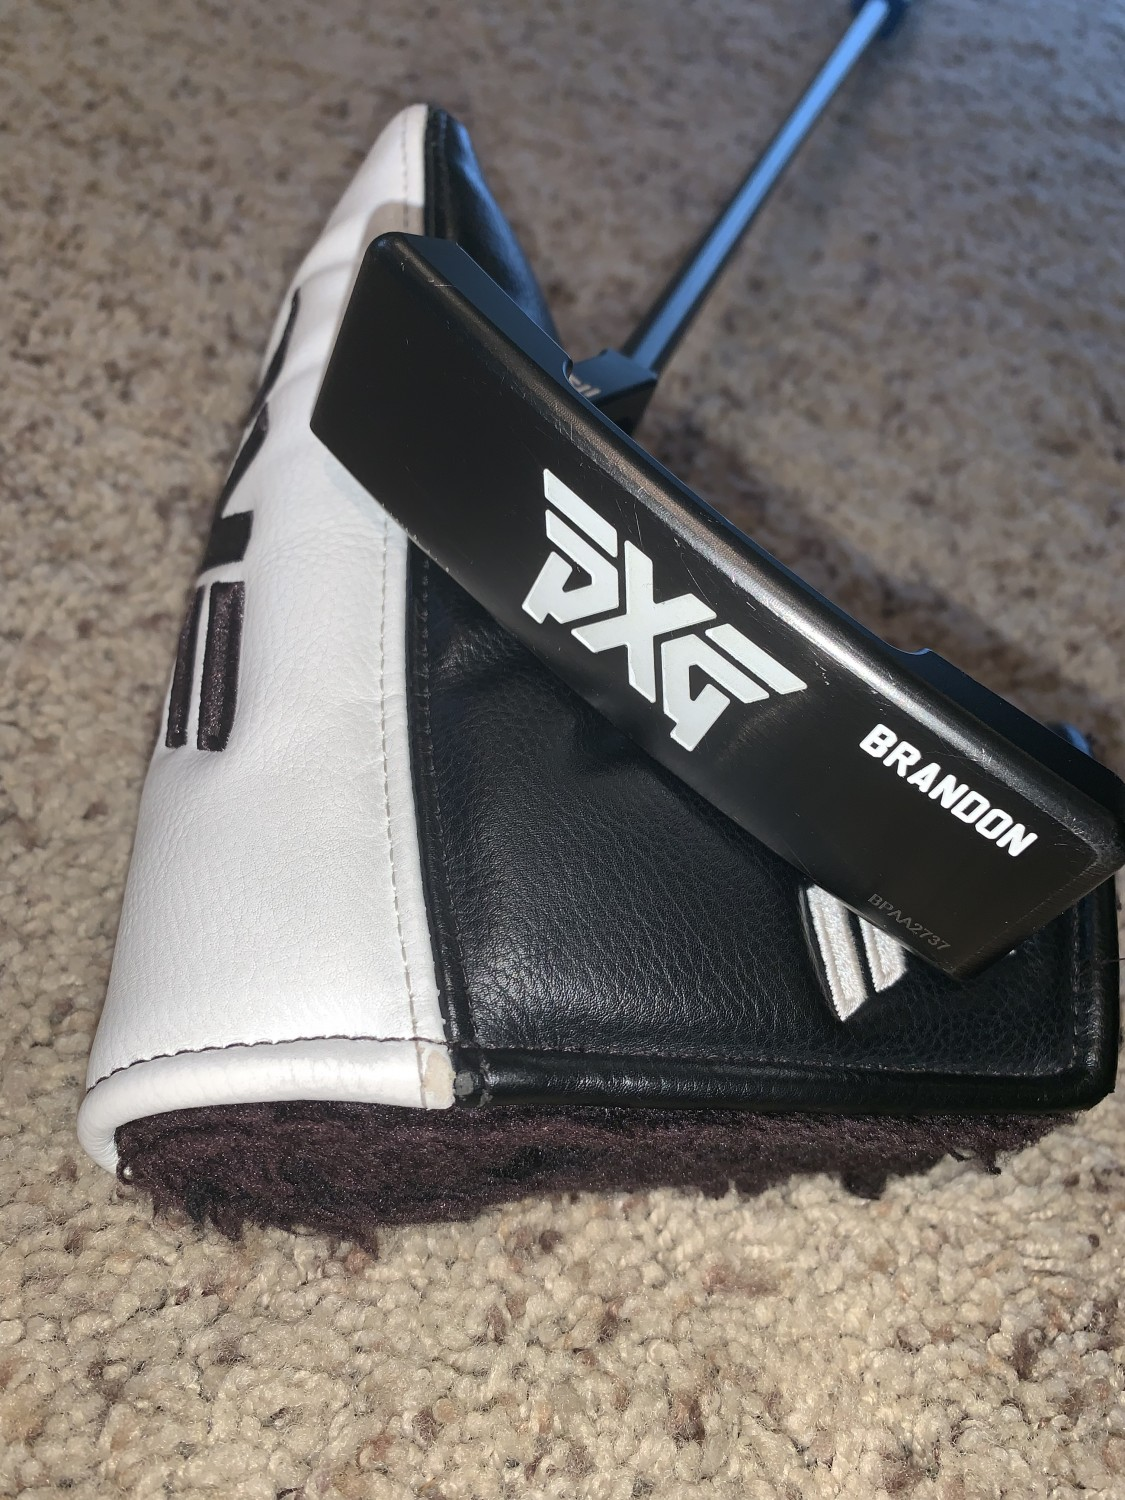 Review: PXG Brandon Putter - Unofficial Reviews - MyGolfSpy